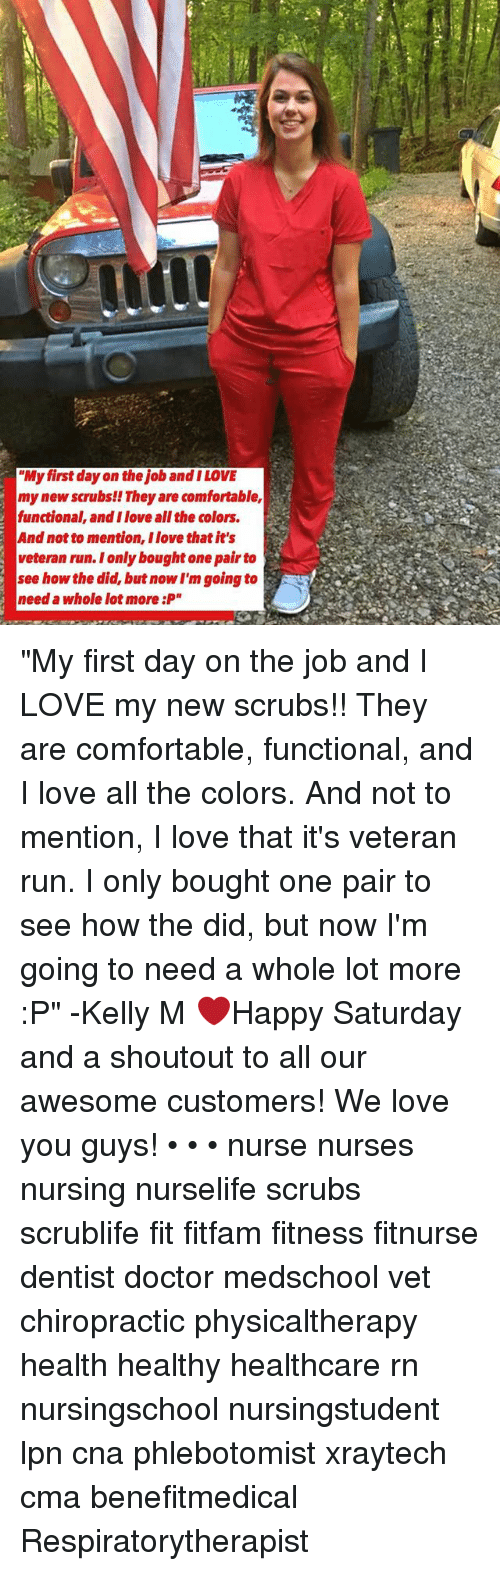 """Comfortable, Doctor, and Love: """"My first day on the job and I LOVE  my new scrubs!! They are comfortable,  functional, and I love all the colors.  And not to mention, I love that it's  veteran run. Ionly bought one pair to  see how the did, but now I'm going to  need a whole lot more :P"""" """"My first day on the job and I LOVE my new scrubs!! They are comfortable, functional, and I love all the colors. And not to mention, I love that it's veteran run. I only bought one pair to see how the did, but now I'm going to need a whole lot more :P"""" -Kelly M ❤️Happy Saturday and a shoutout to all our awesome customers! We love you guys! • • • nurse nurses nursing nurselife scrubs scrublife fit fitfam fitness fitnurse dentist doctor medschool vet chiropractic physicaltherapy health healthy healthcare rn nursingschool nursingstudent lpn cna phlebotomist xraytech cma benefitmedical Respiratorytherapist"""